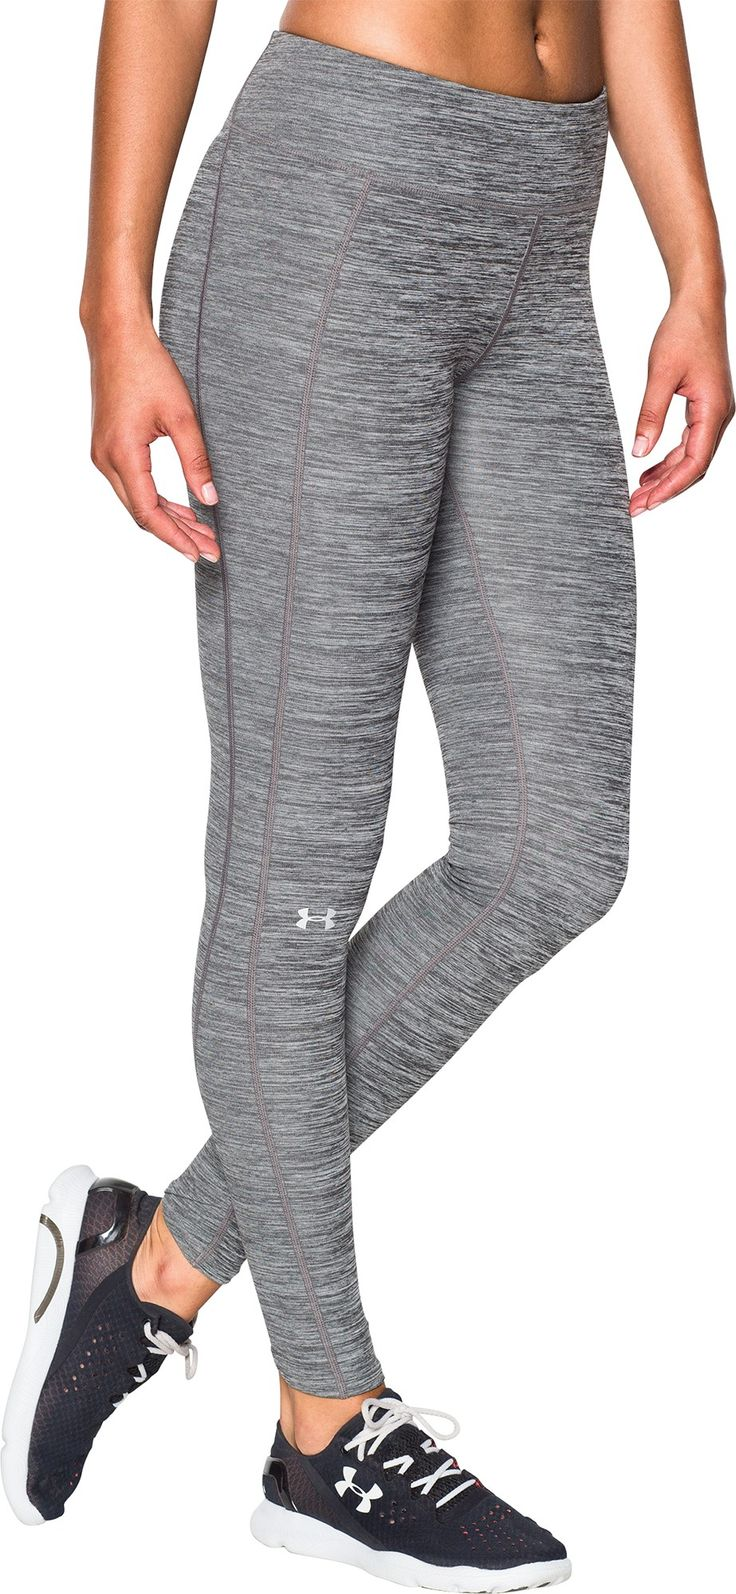 Under Armour Female Coldgear Leggings - Women's